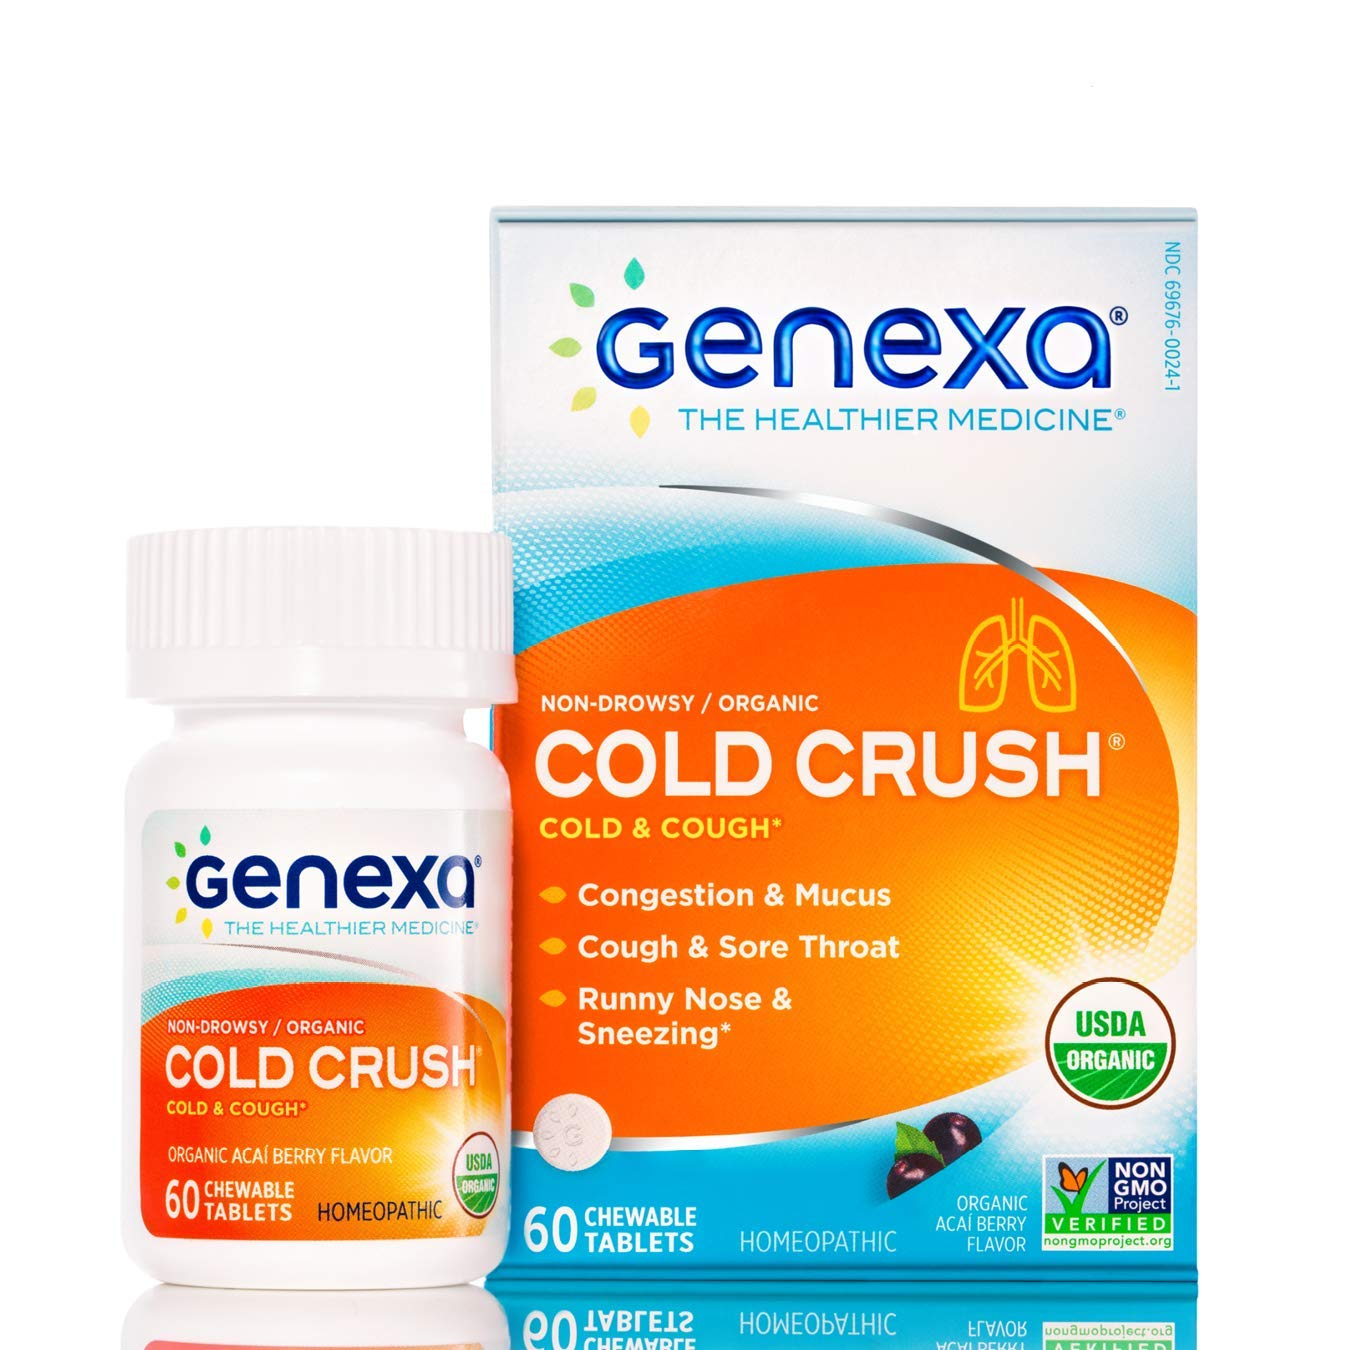 Genexa Cold Crush - 180 Tablets (3 Pack) | Certified Organic & Non-GMO, Physician Formulated, homeopathic | Cough & Cold Medicine by Genexa